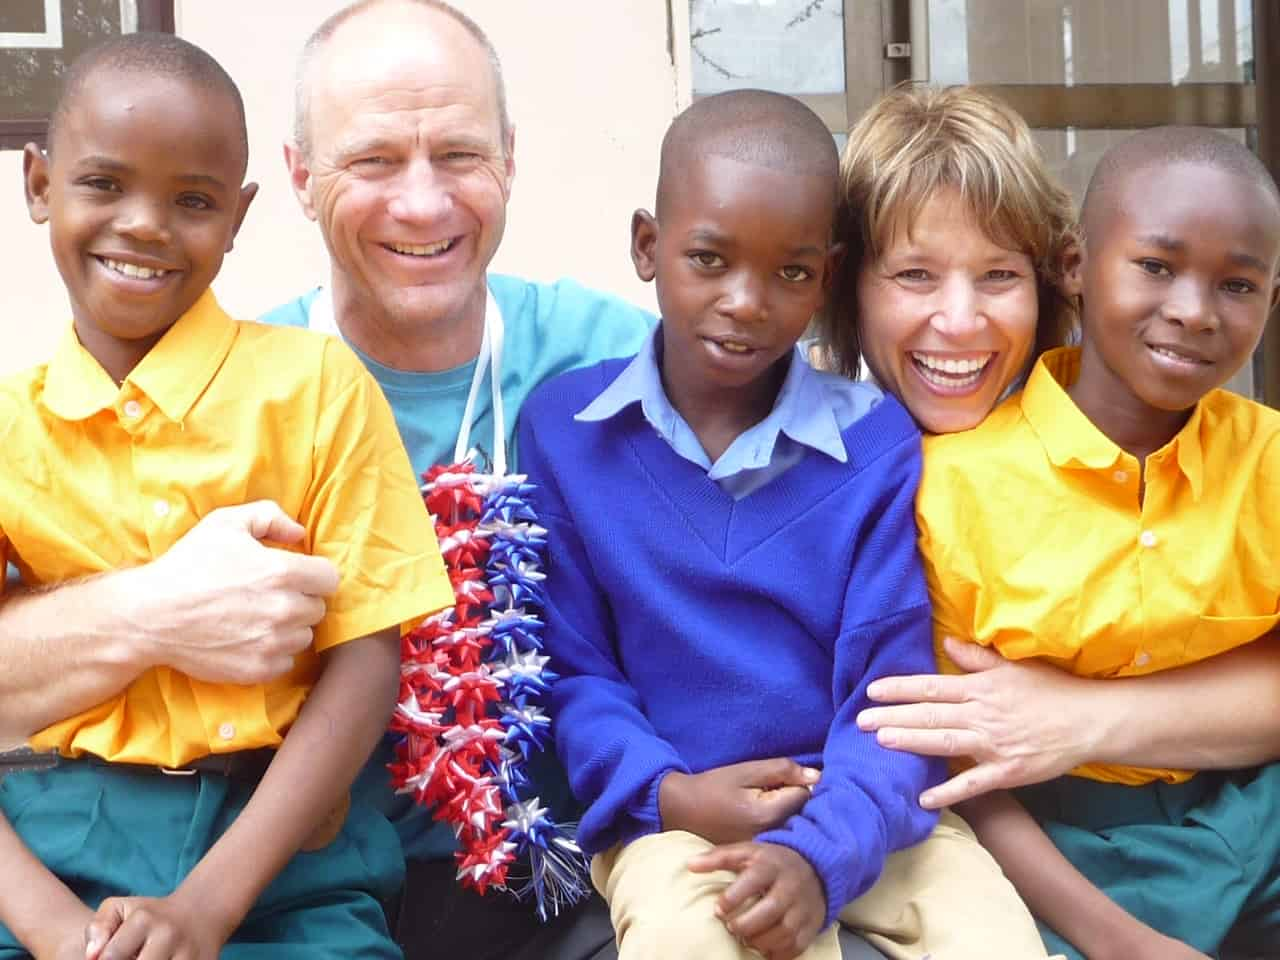 A man and woman hug three children in school uniforms